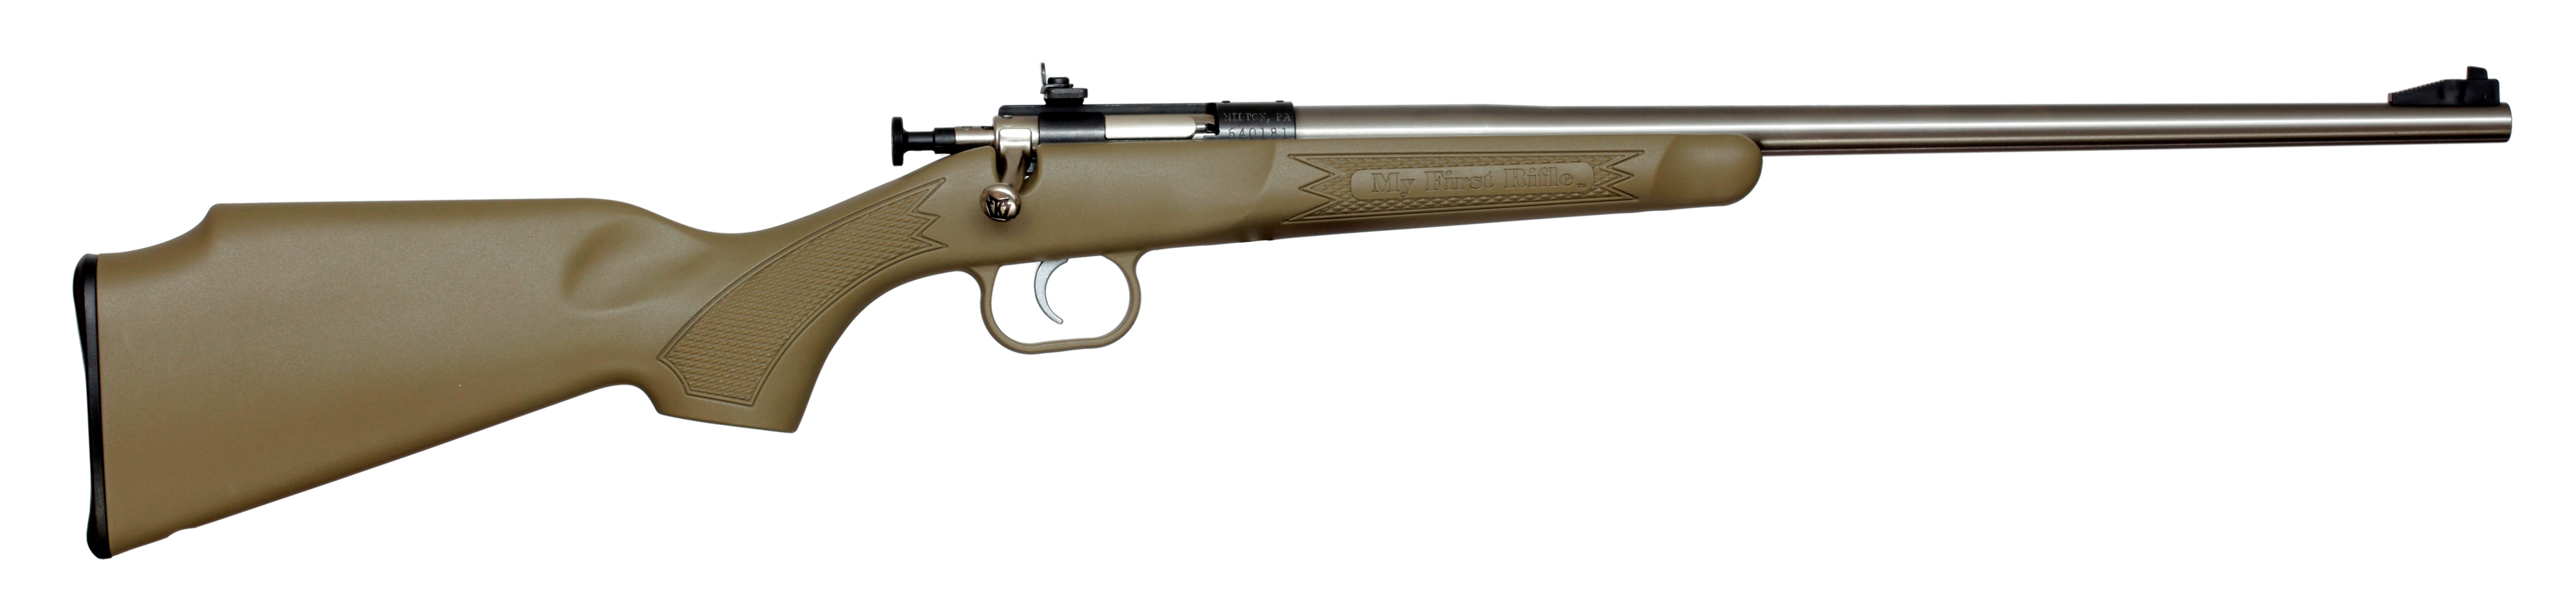 Keystone Sporting Arms CRICKETT 22 LR